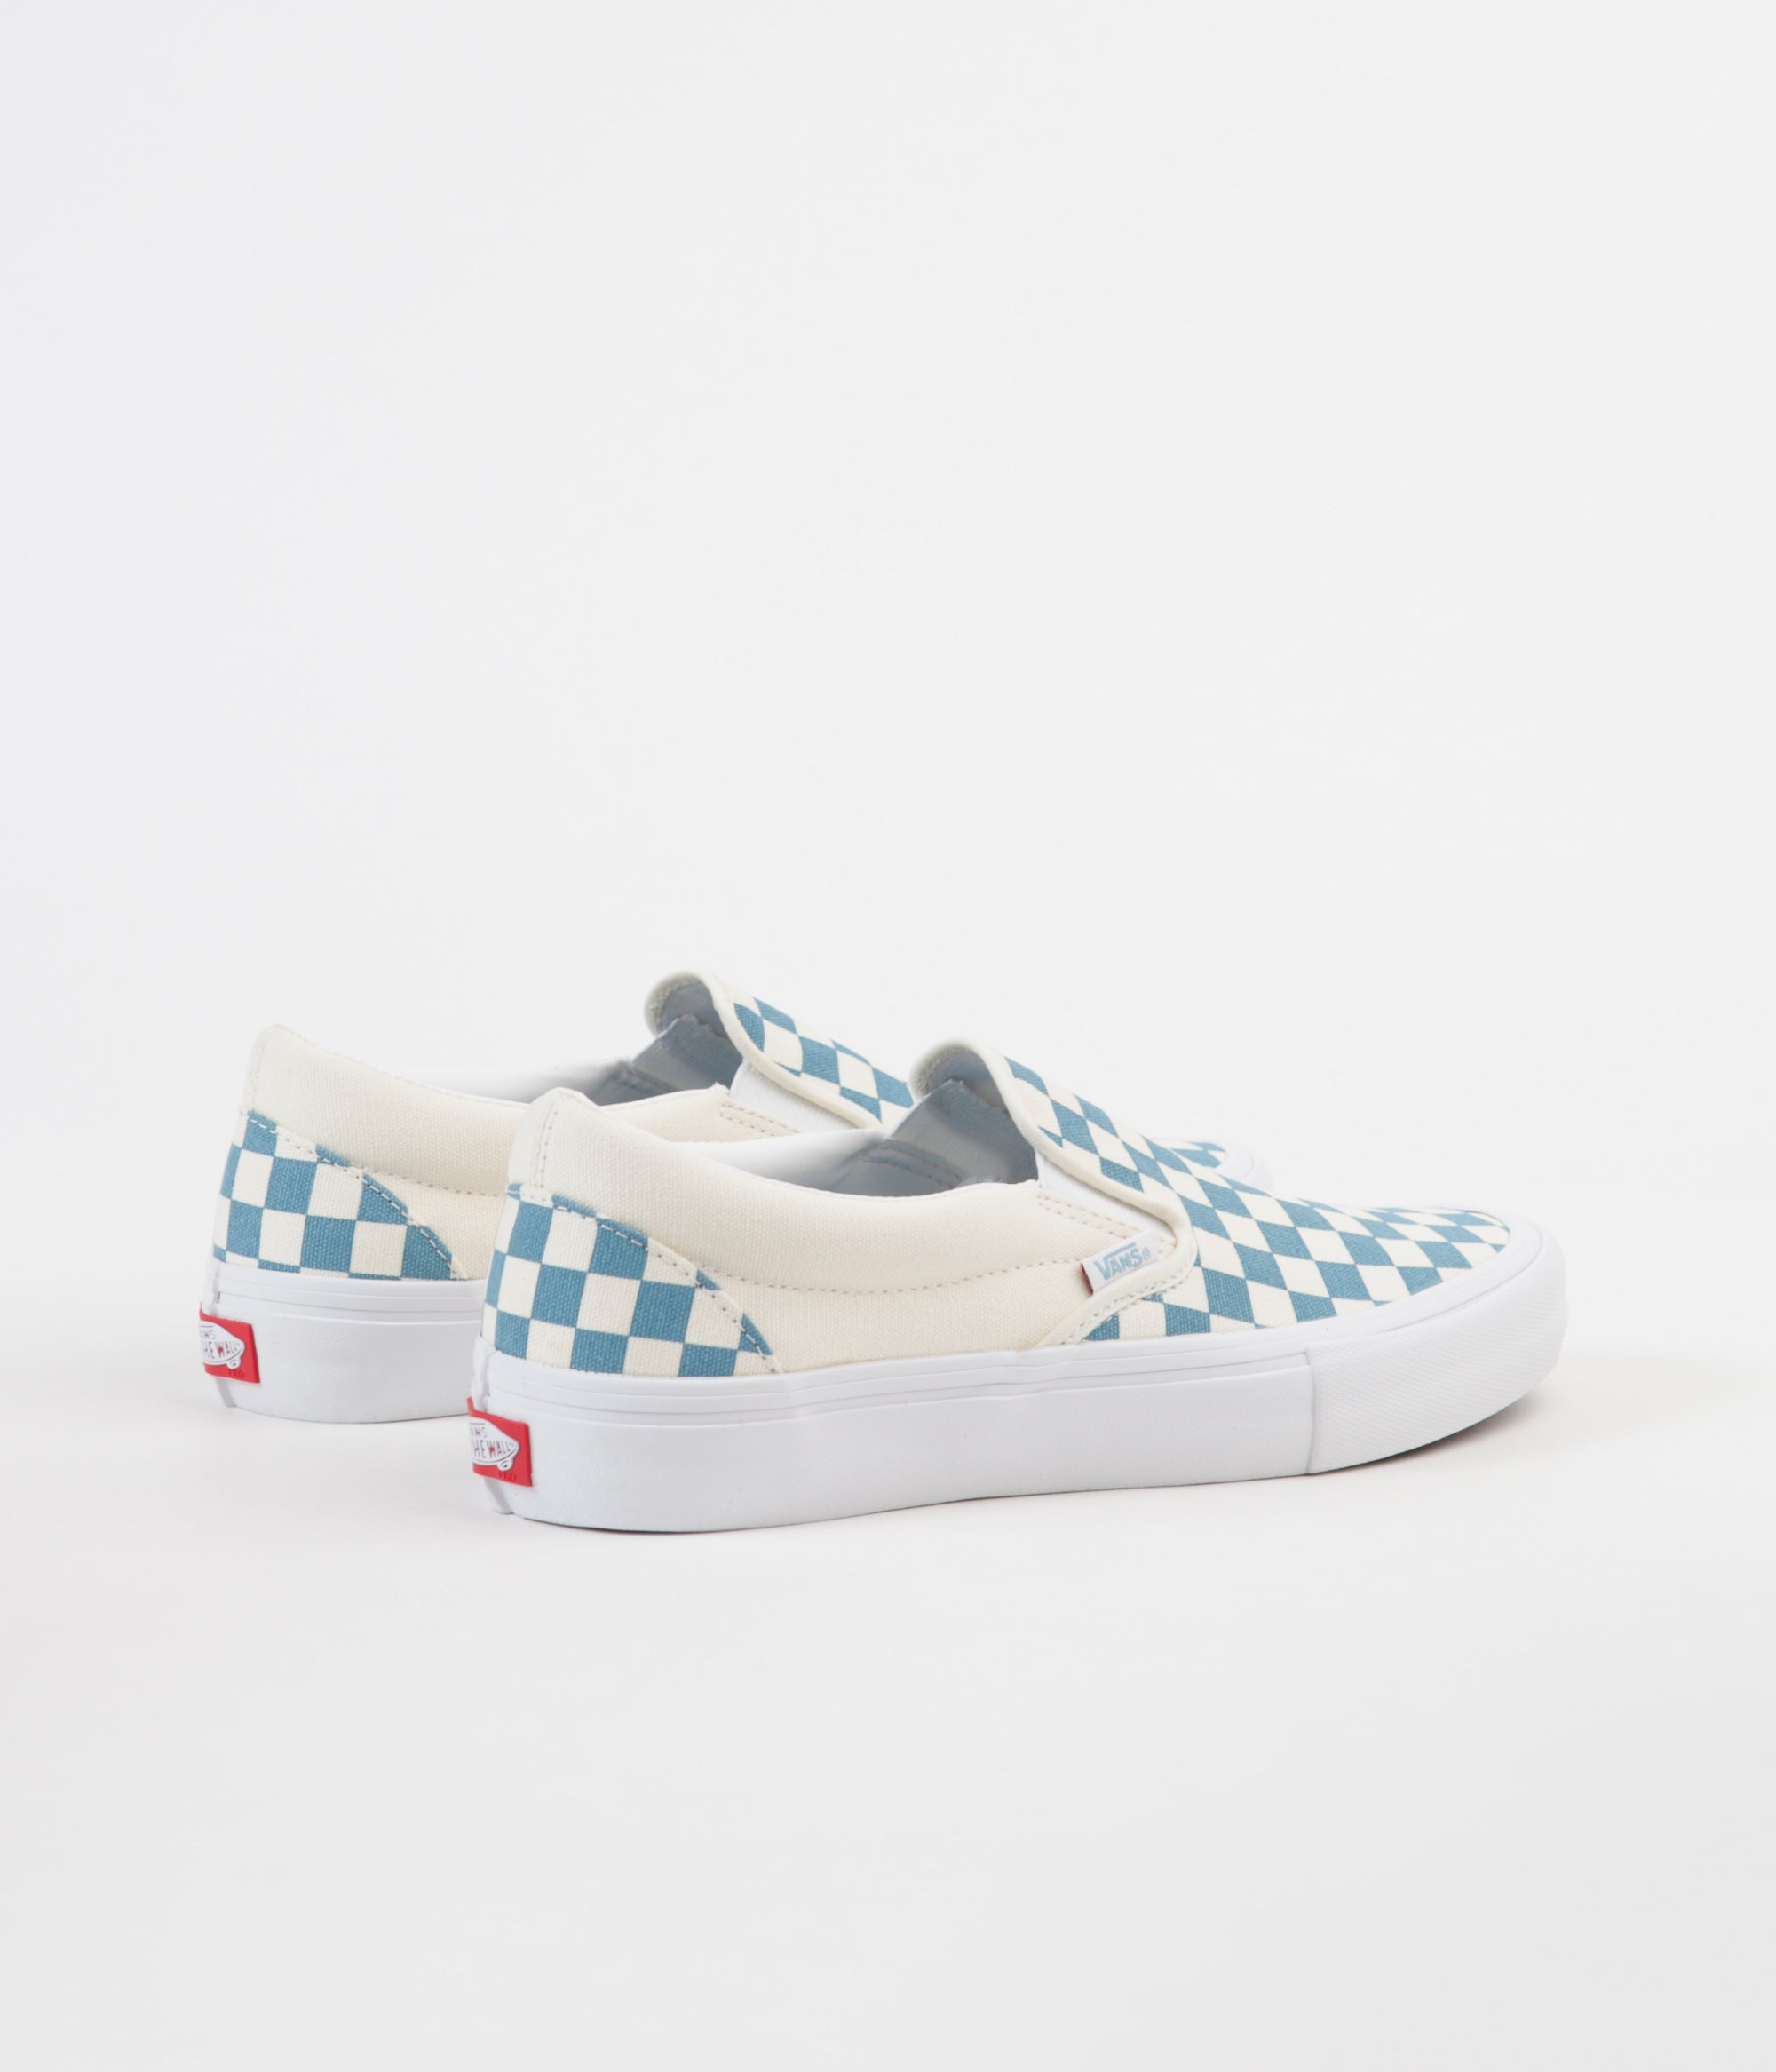 Vans Slip On Pro Checkerboard Shoes - Adriatic Blue / White | Flatspot